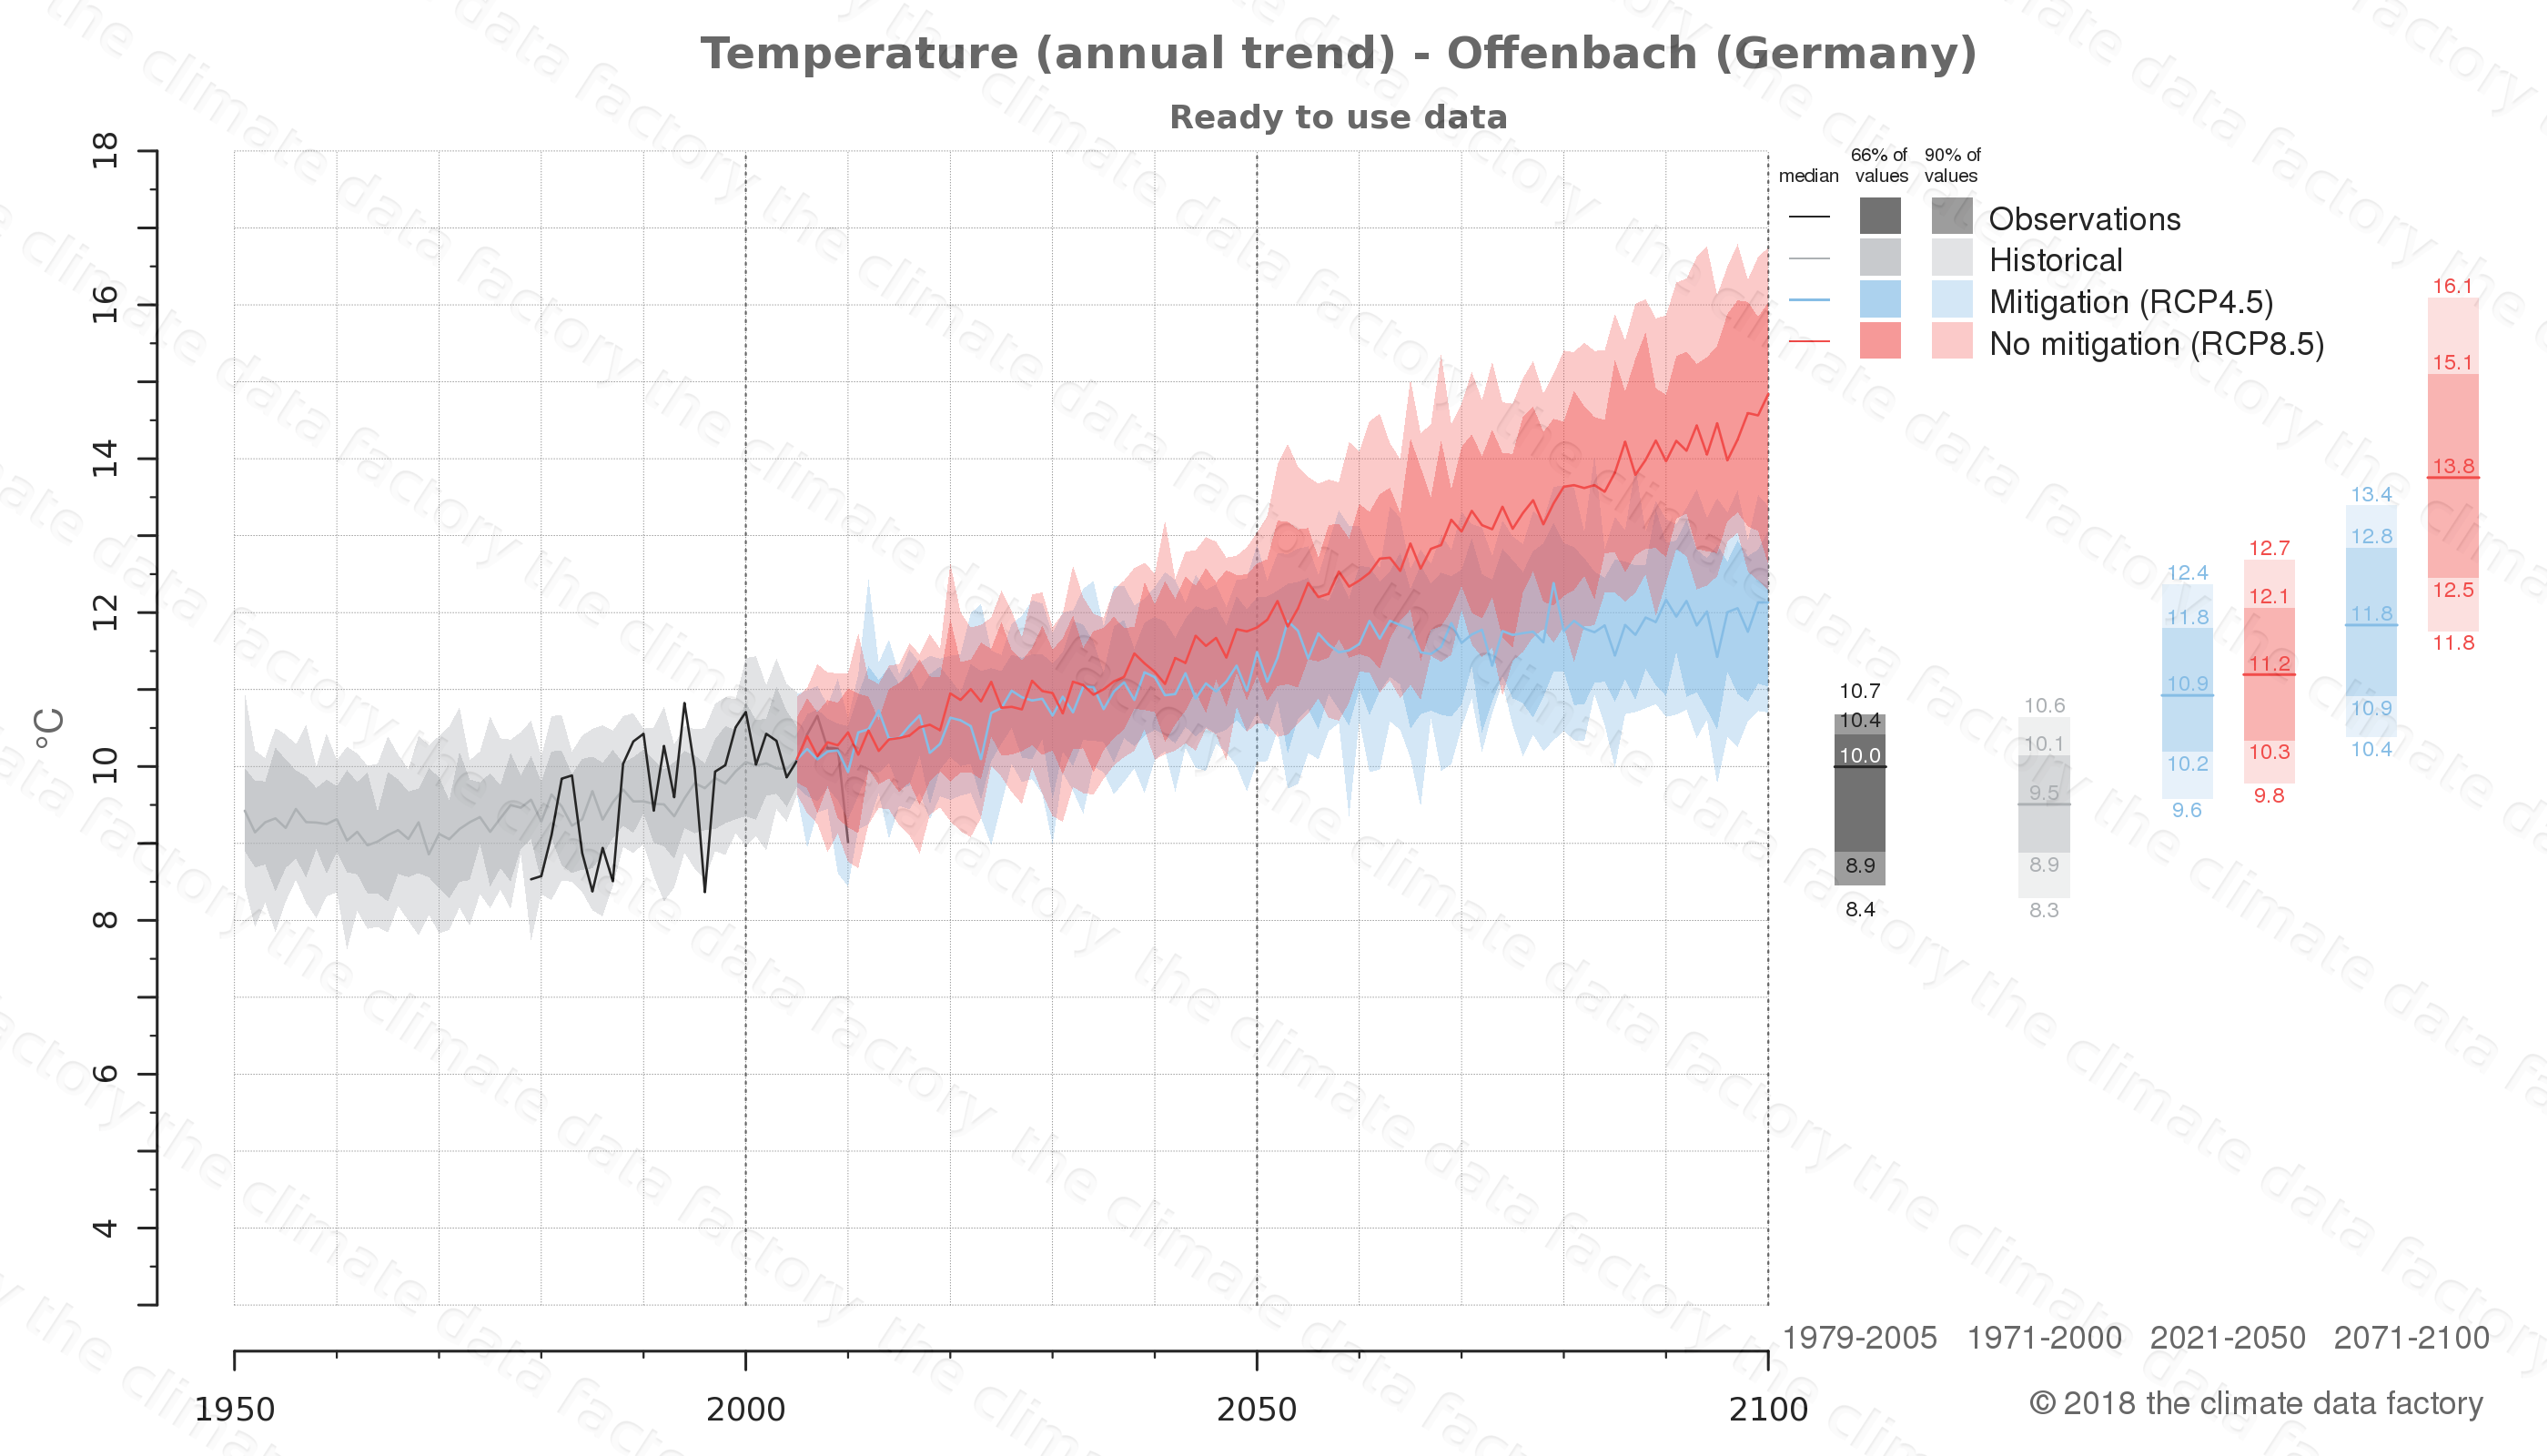 climate change data policy adaptation climate graph city data temperature offenbach germany